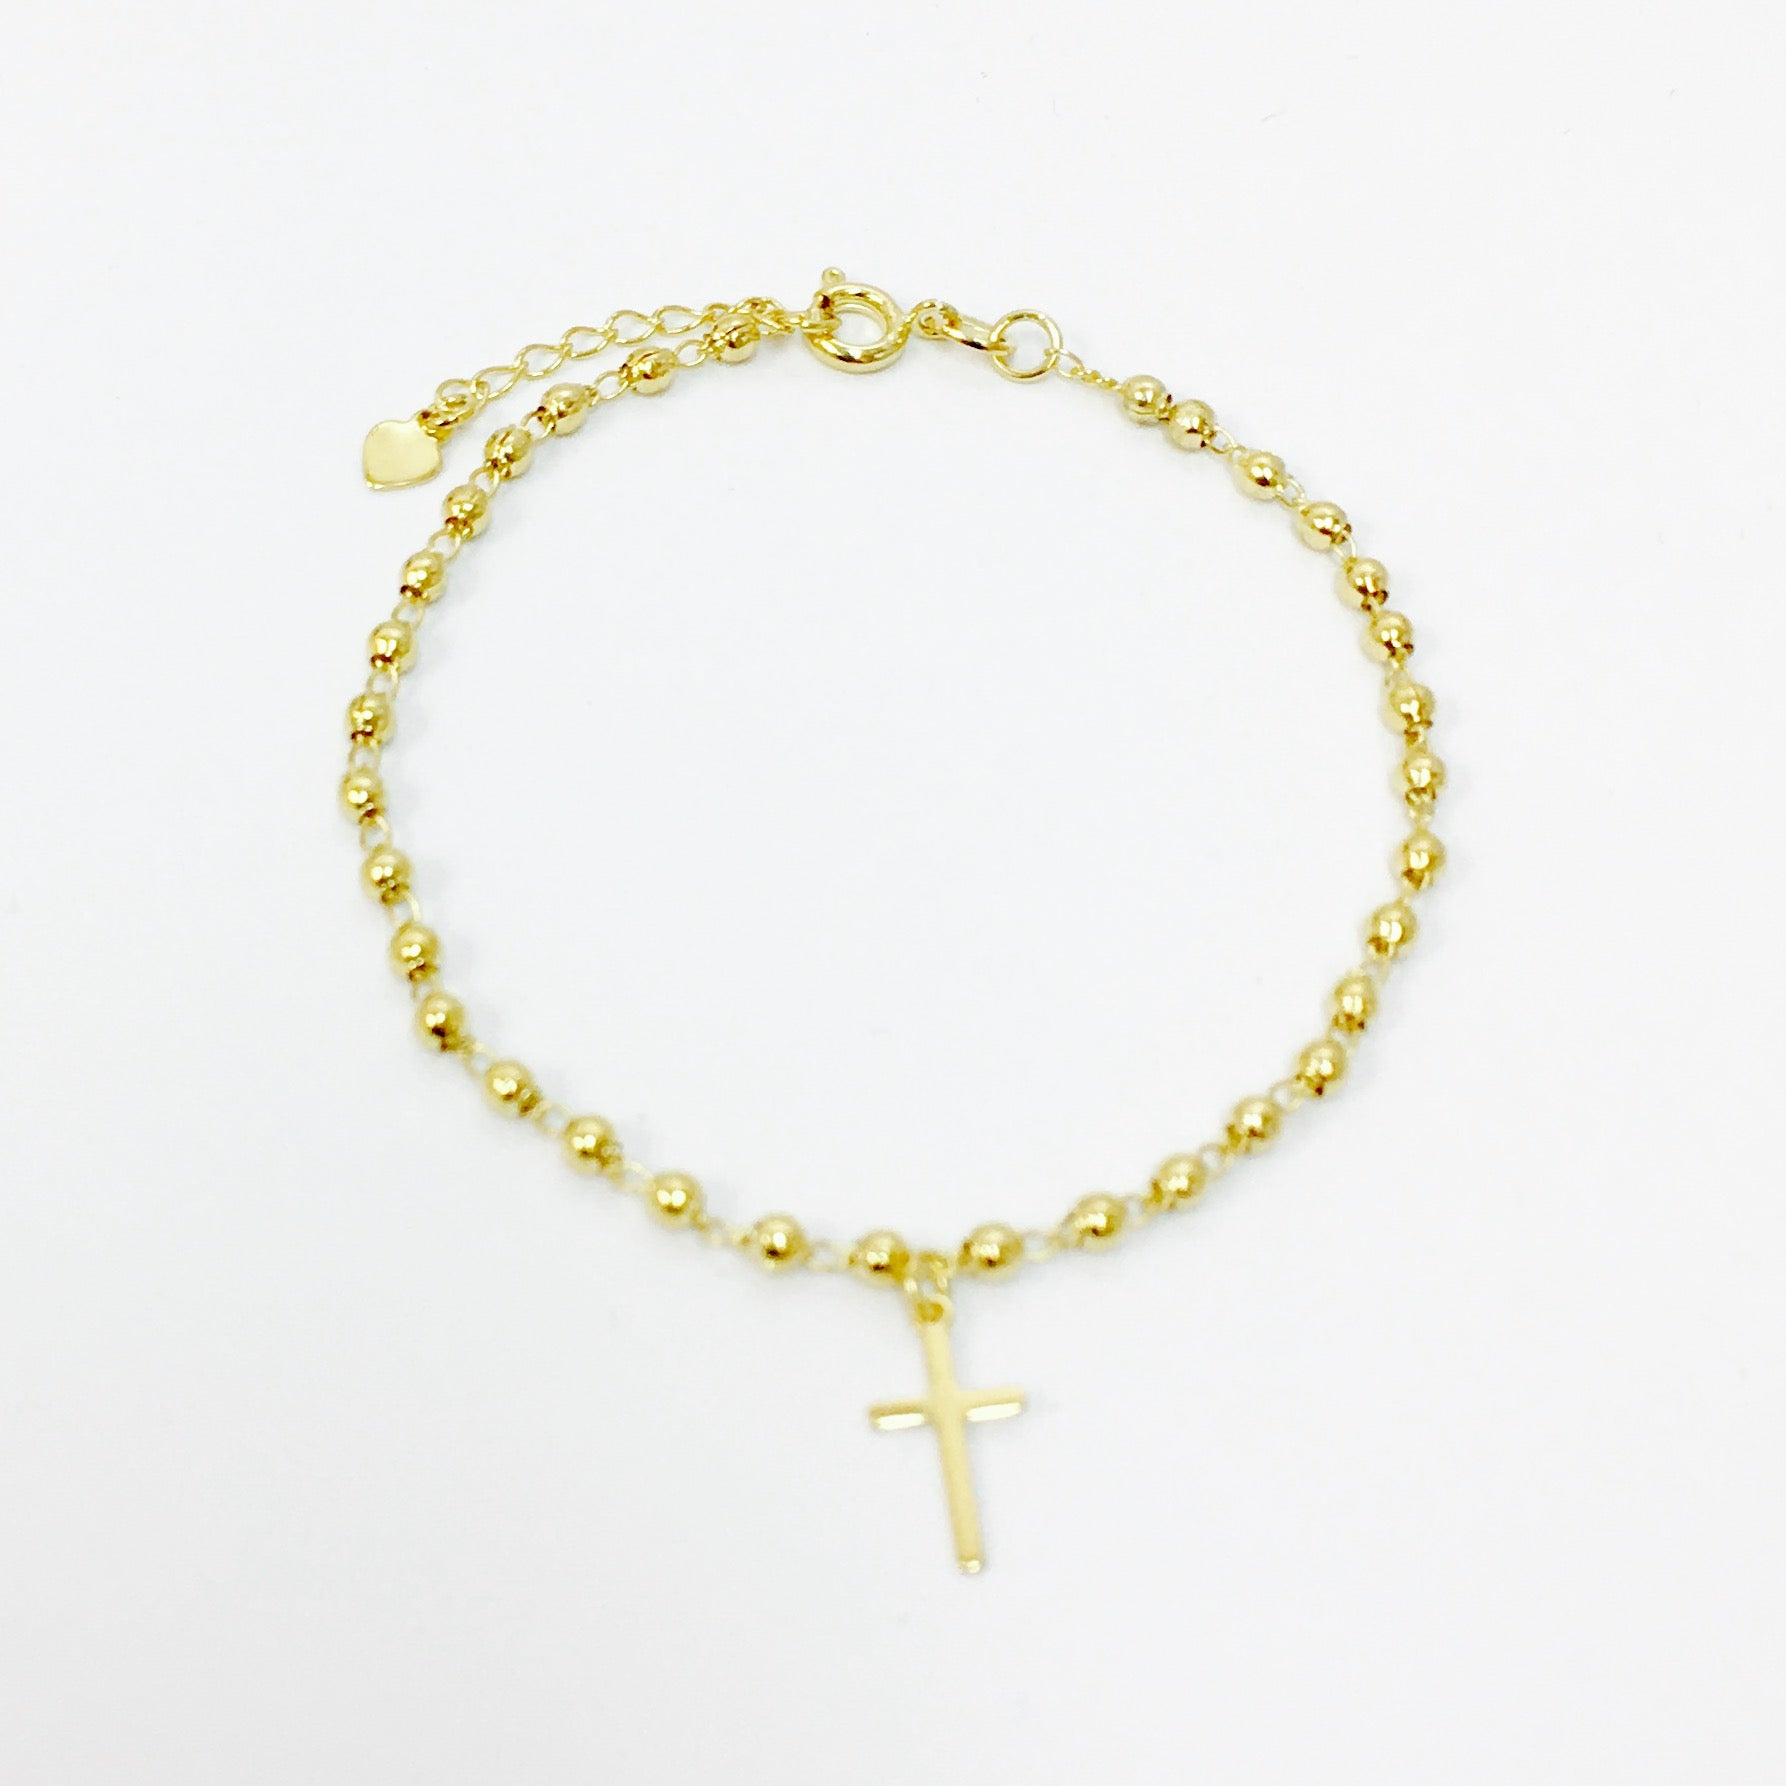 FINE ROSARY CROSS BRACELET - Wonderfuletta